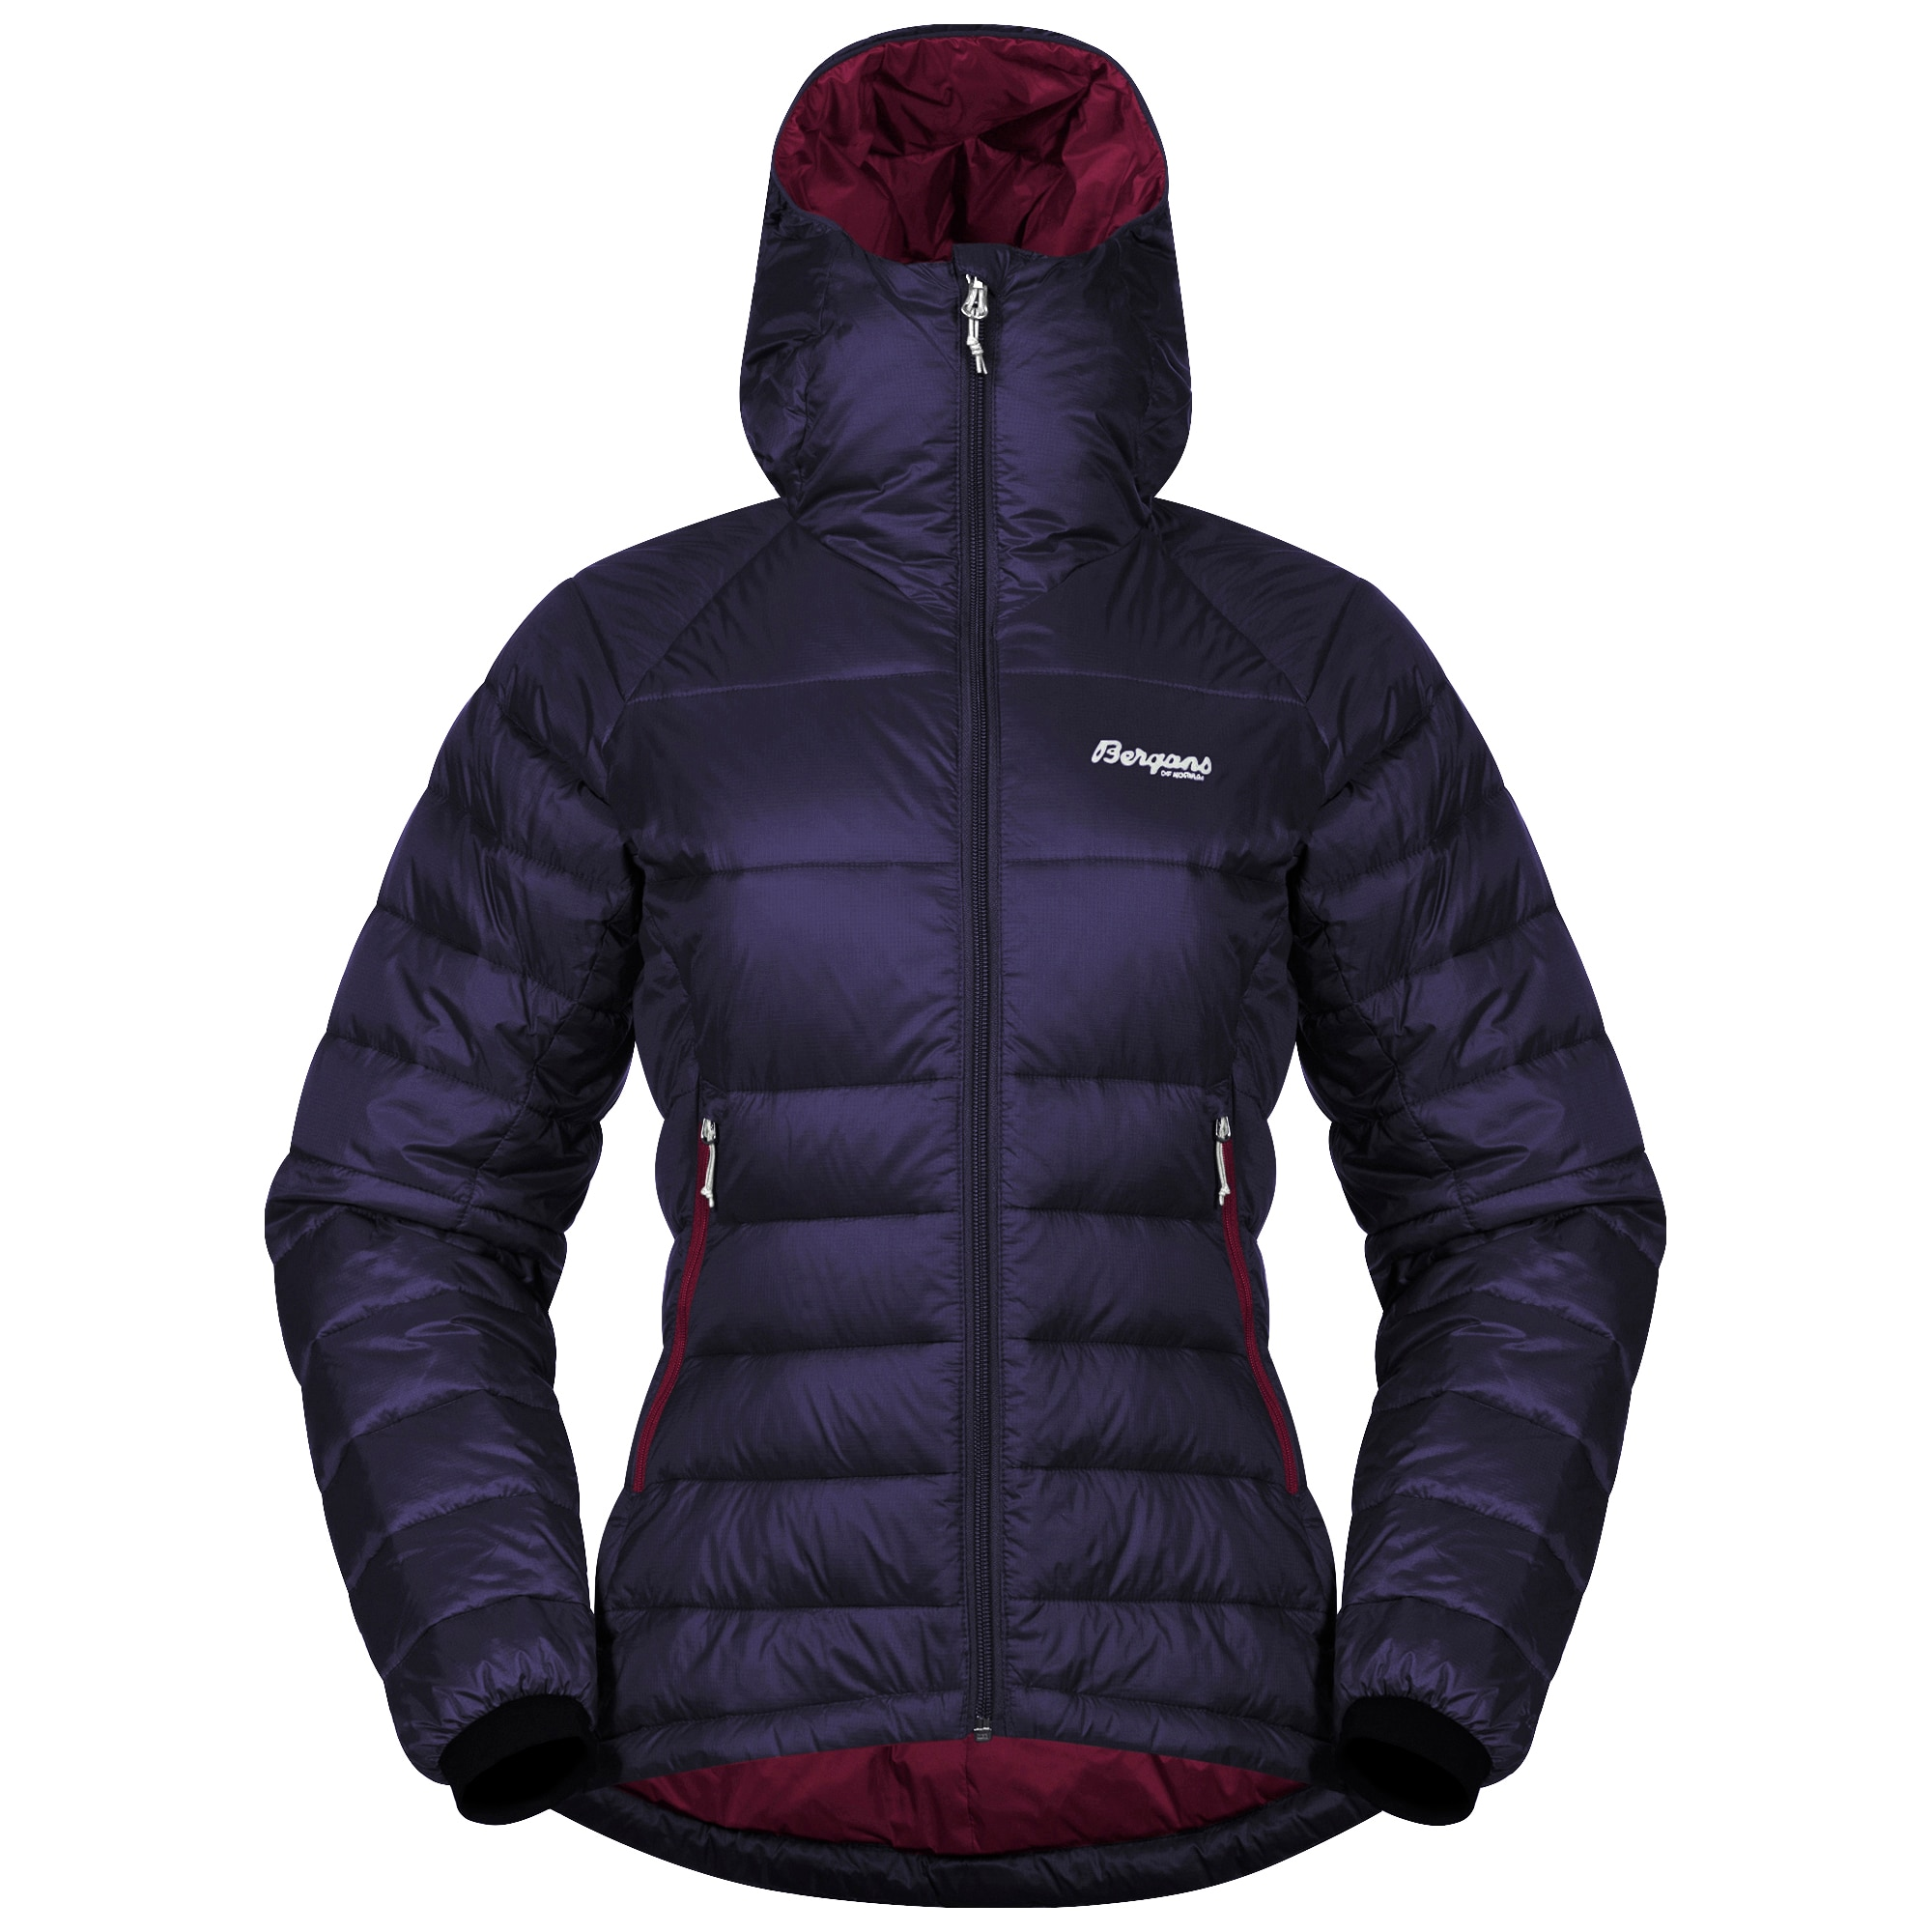 Slingsby Down Light W Jacket with Hood